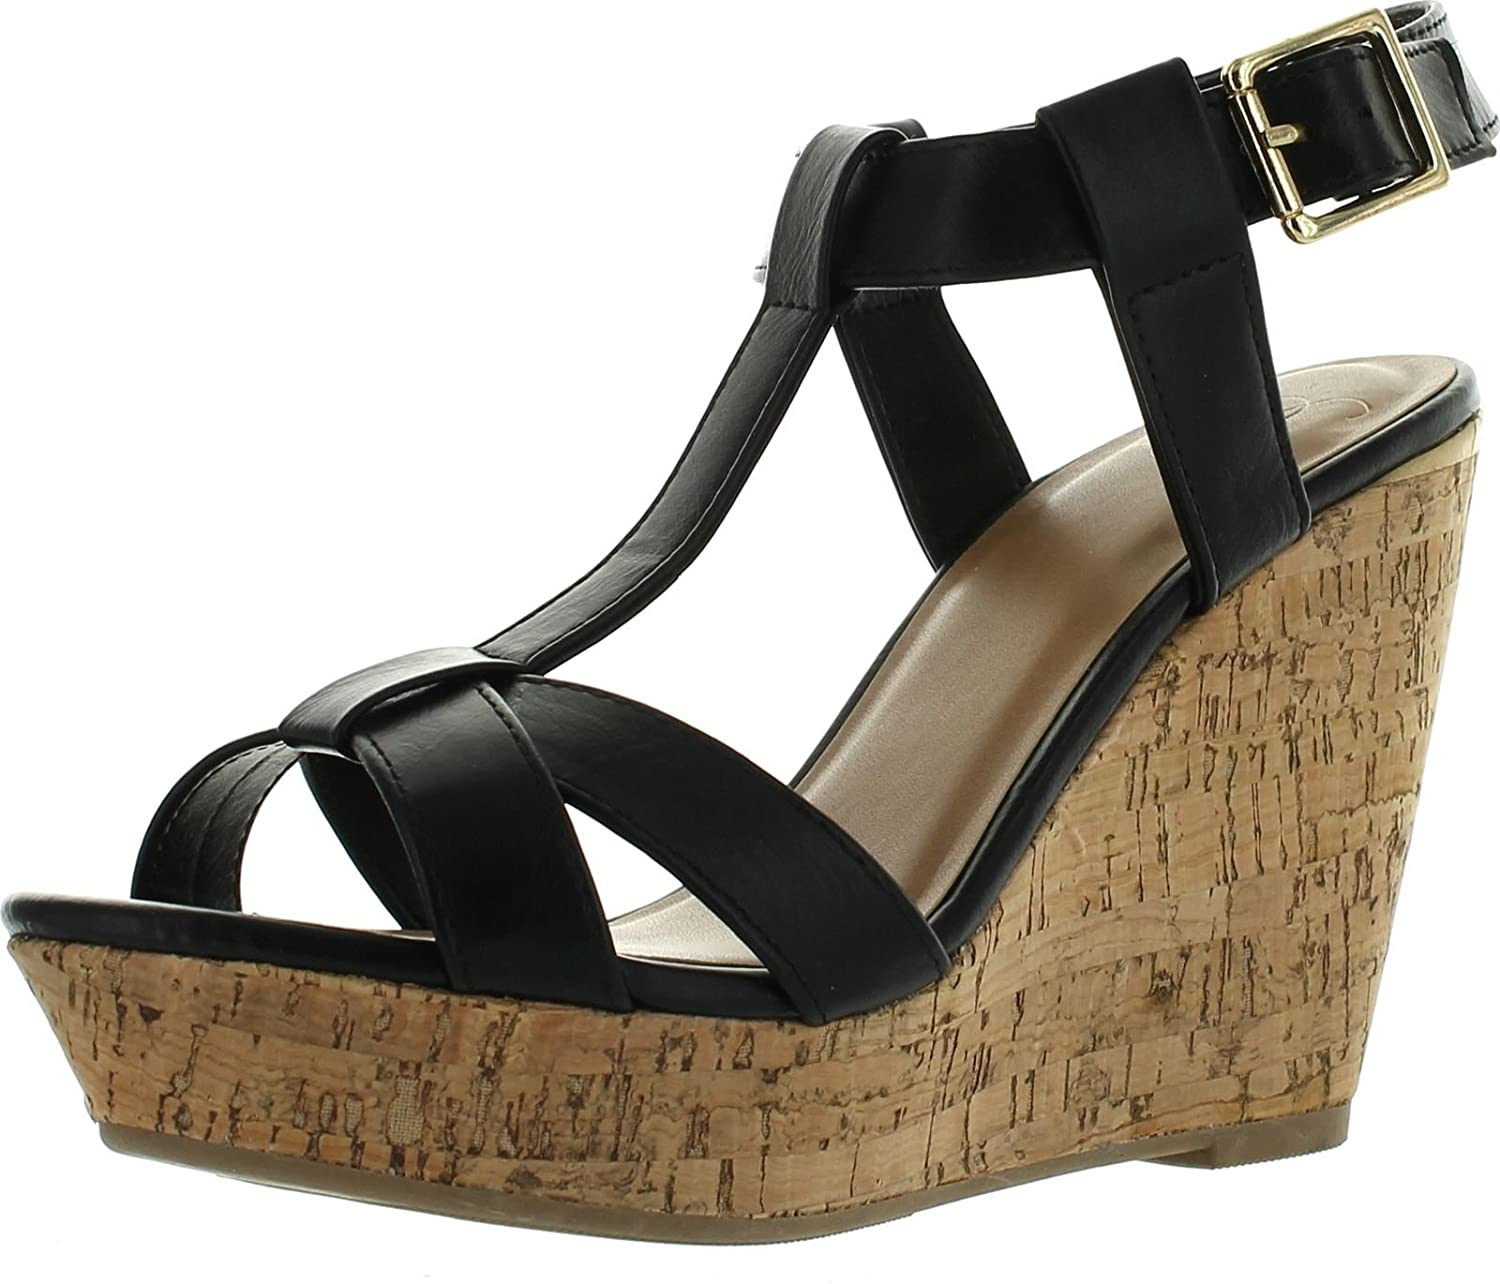 Delicious Womens Johanna T-Strap Cork Platform Wedge Sandals B00W29TV98 10 B(M) US|Black